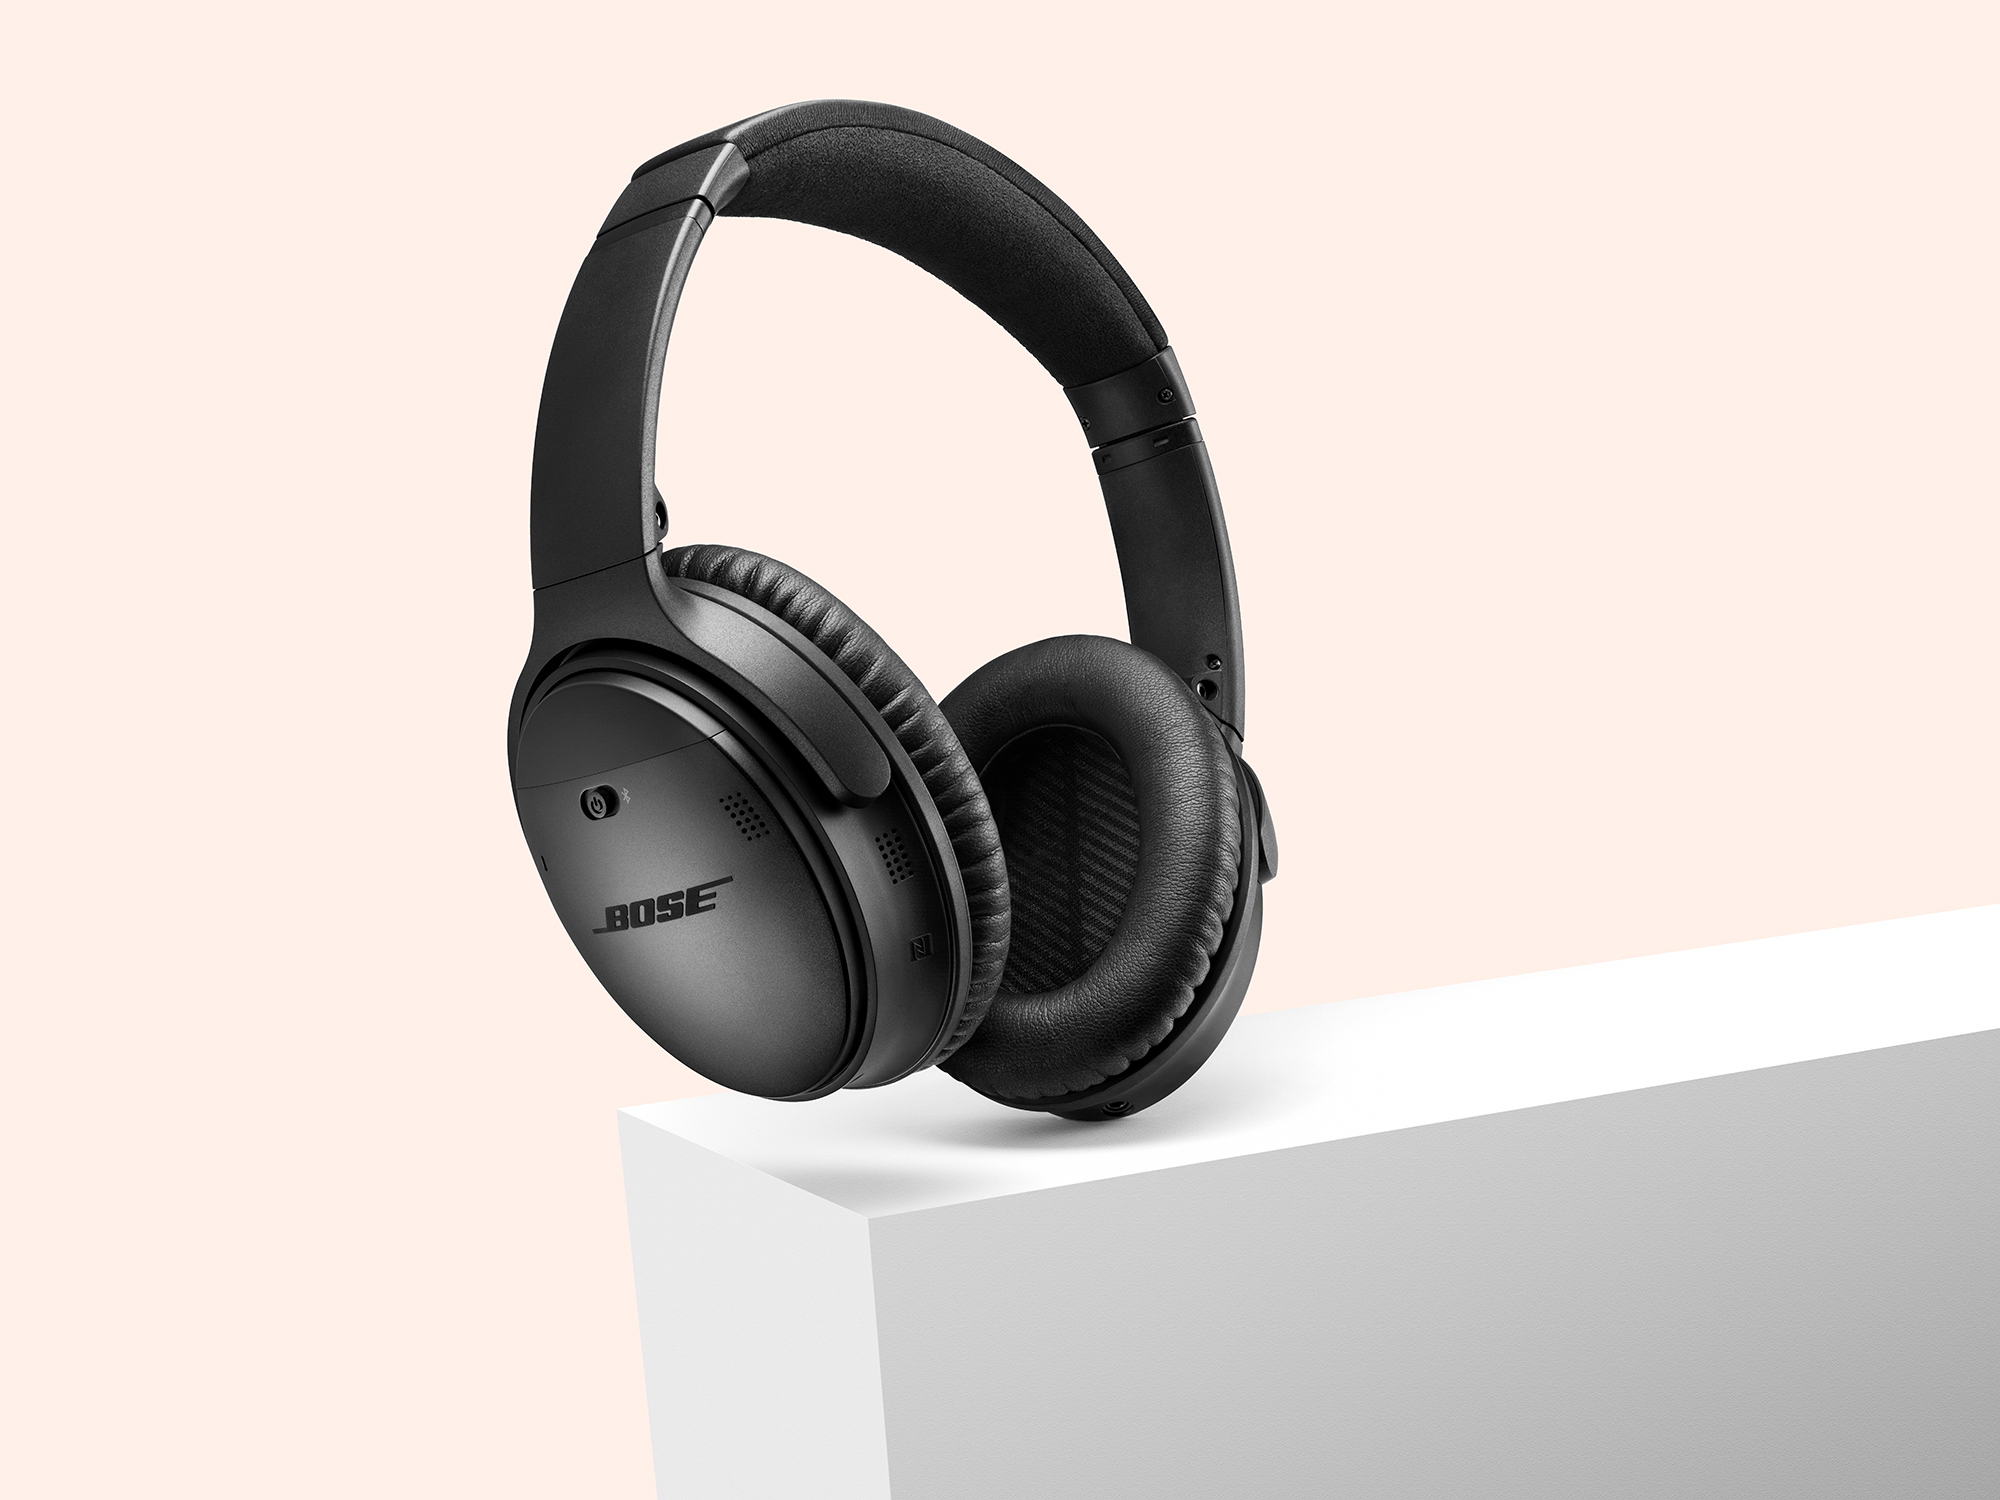 Bose_Headphones_crop_web